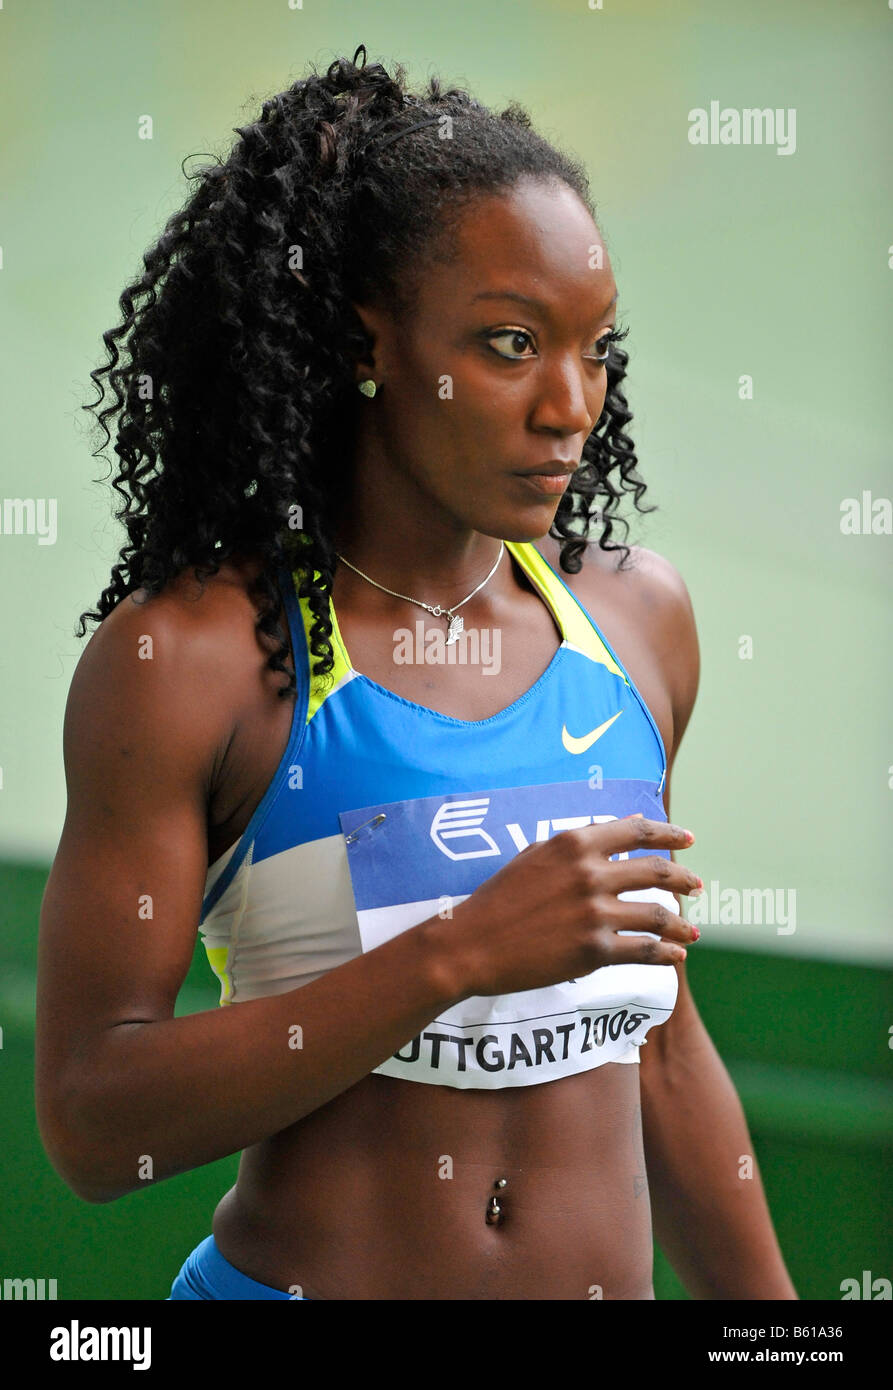 Funmi JIMOH, USA, Long jump athlete at the IAAF 2008 World Athletics Final for track and field in the Mercedes-Benz - Stock Image